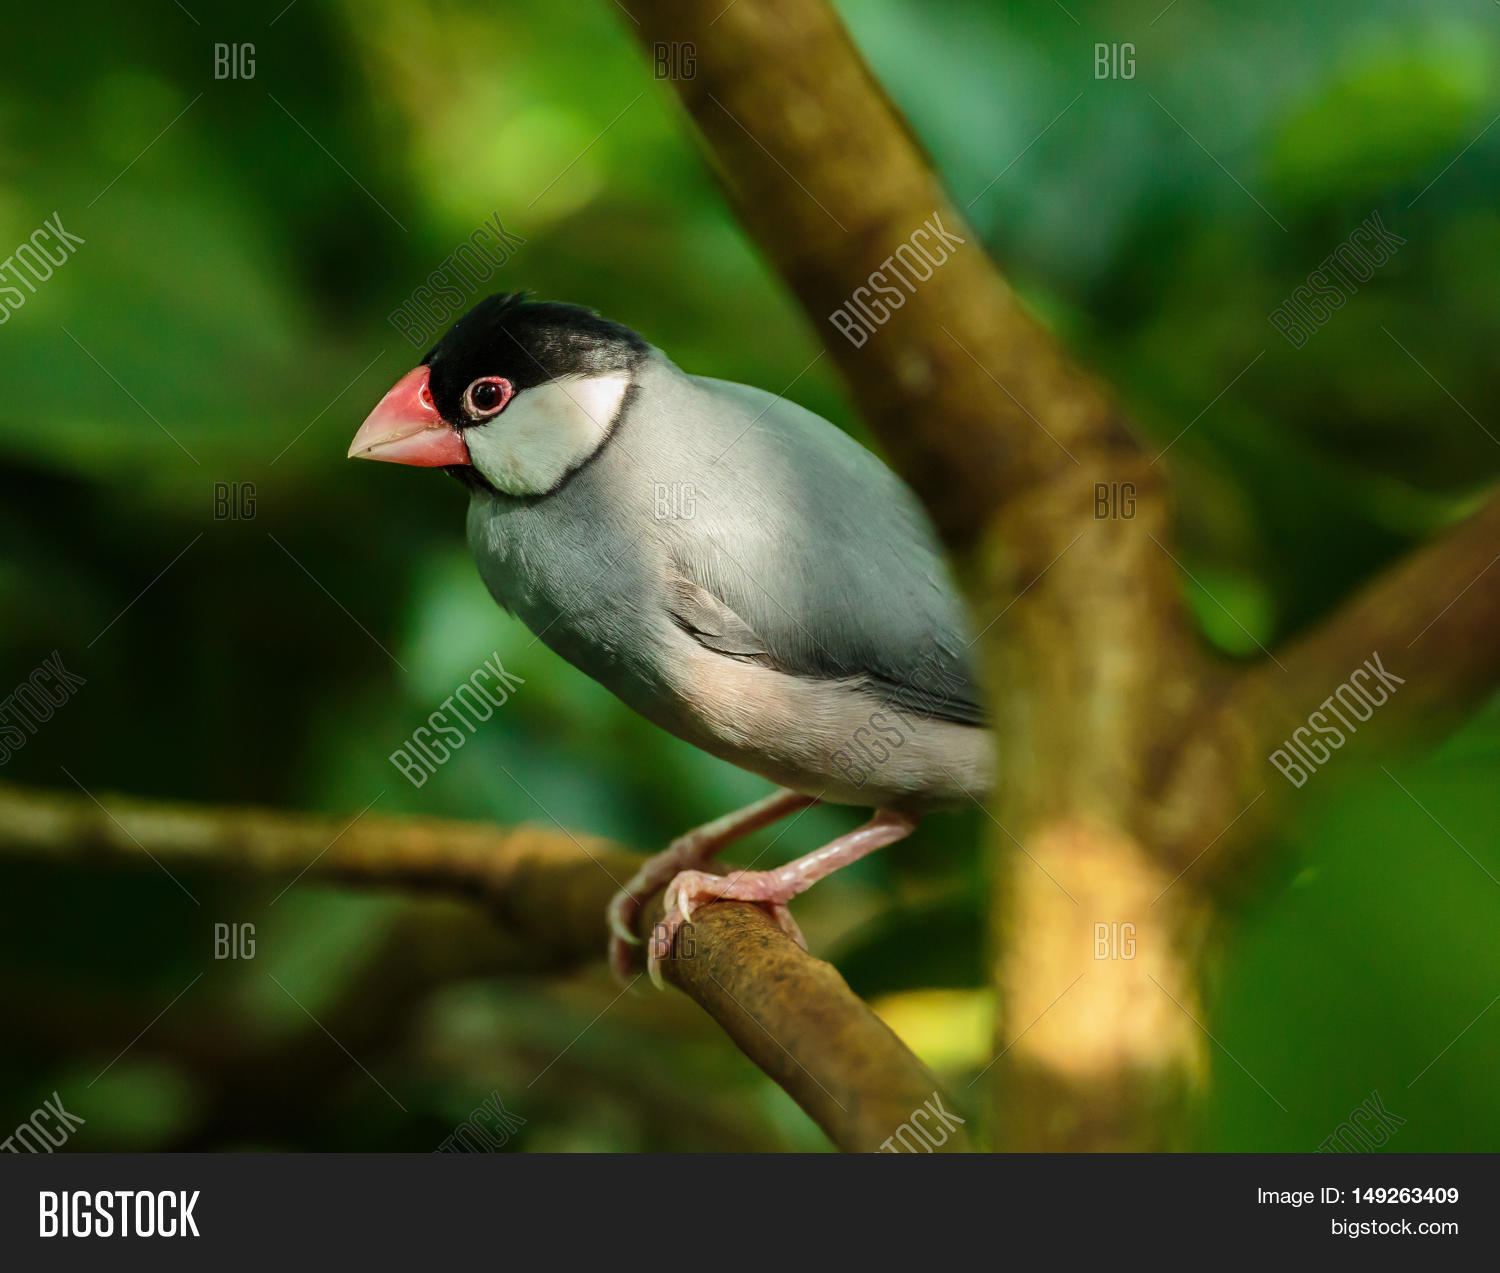 Java Sparrow On Branch Image & Photo (Free Trial) | Bigstock